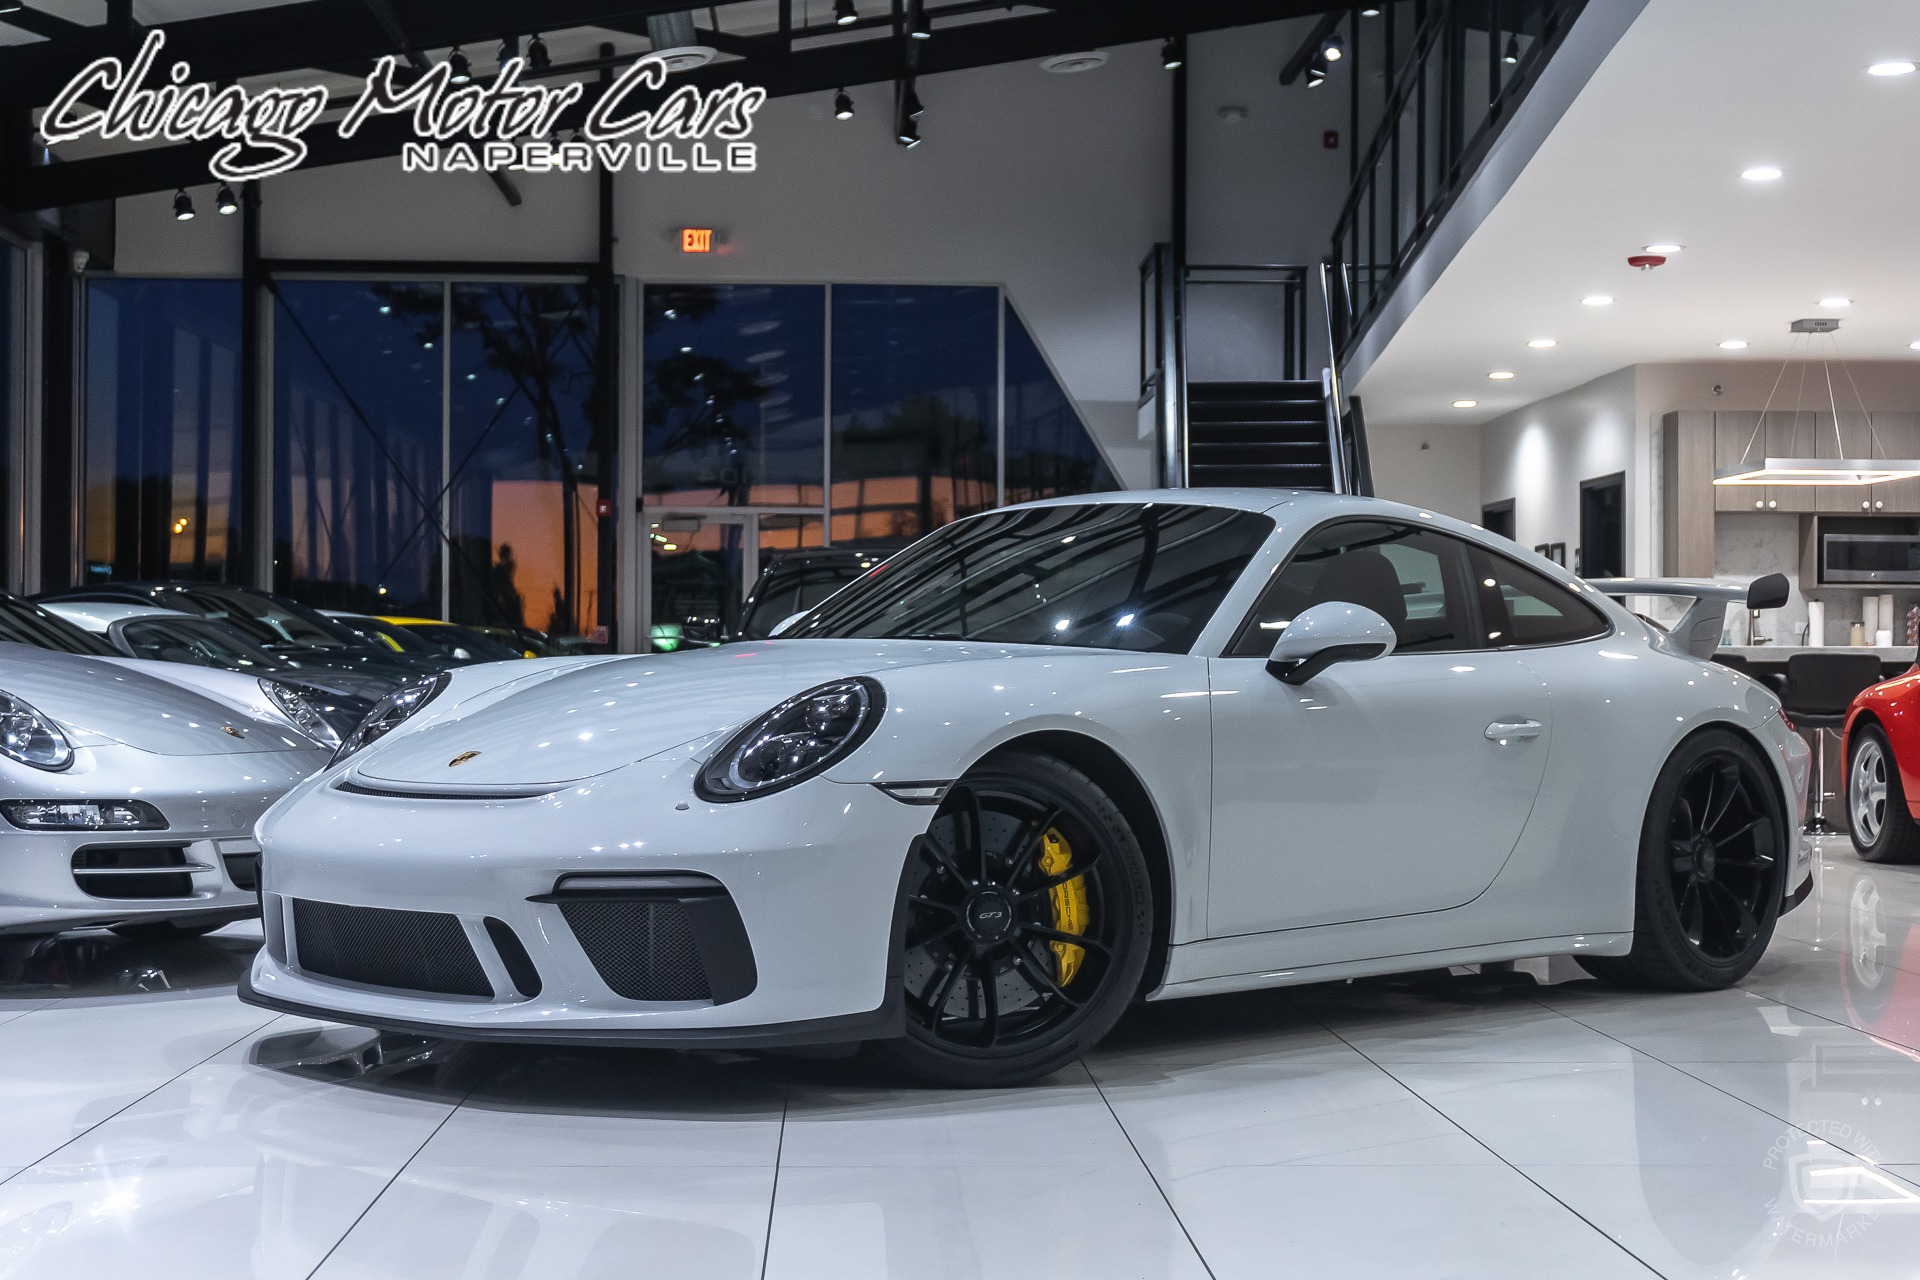 Used 2018 Porsche 911 Gt3 Coupe Msrp 174k Carbon Ceramic Brakes For Sale Special Pricing Chicago Motor Cars Stock 16414